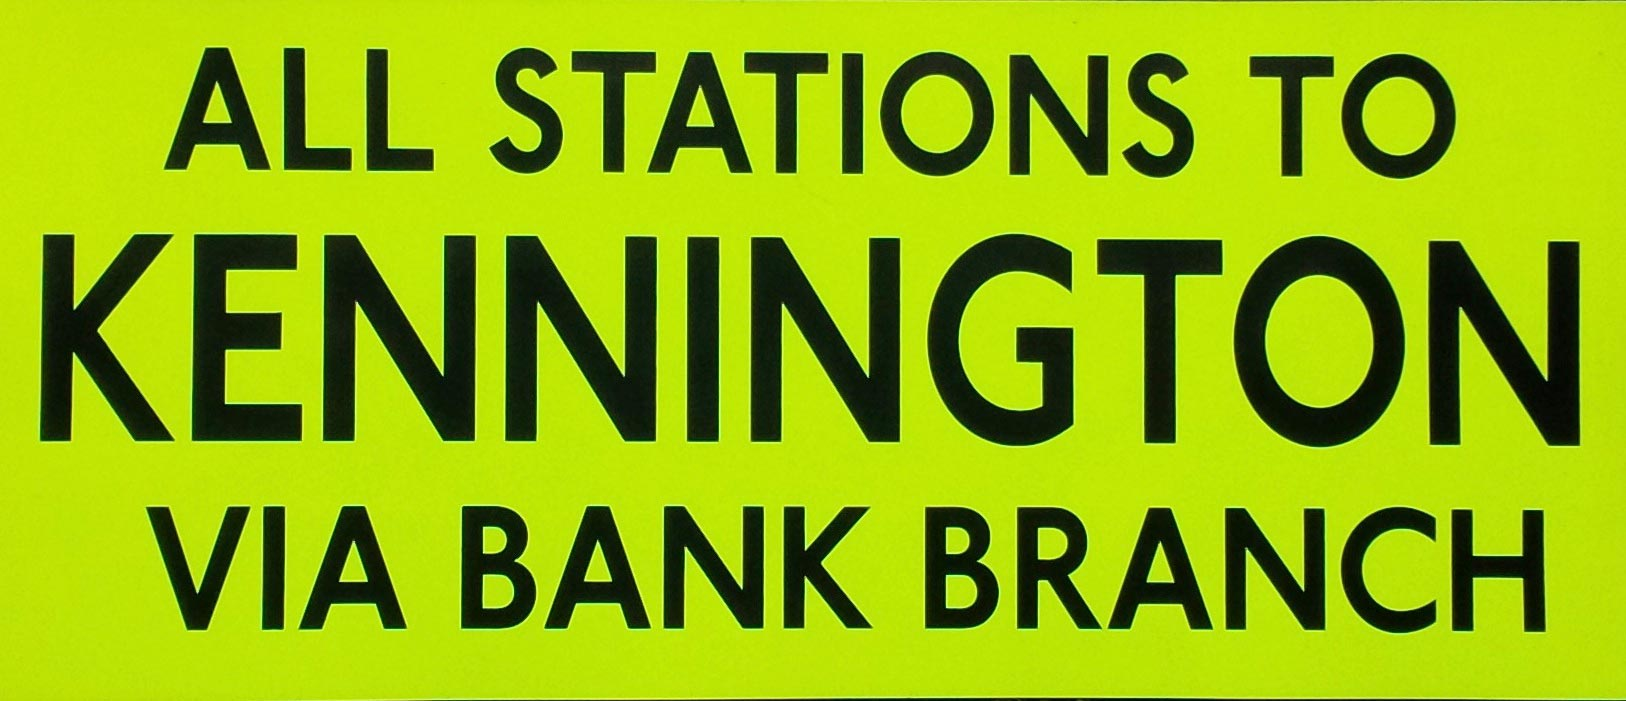 All Stations To Kennington via Bank